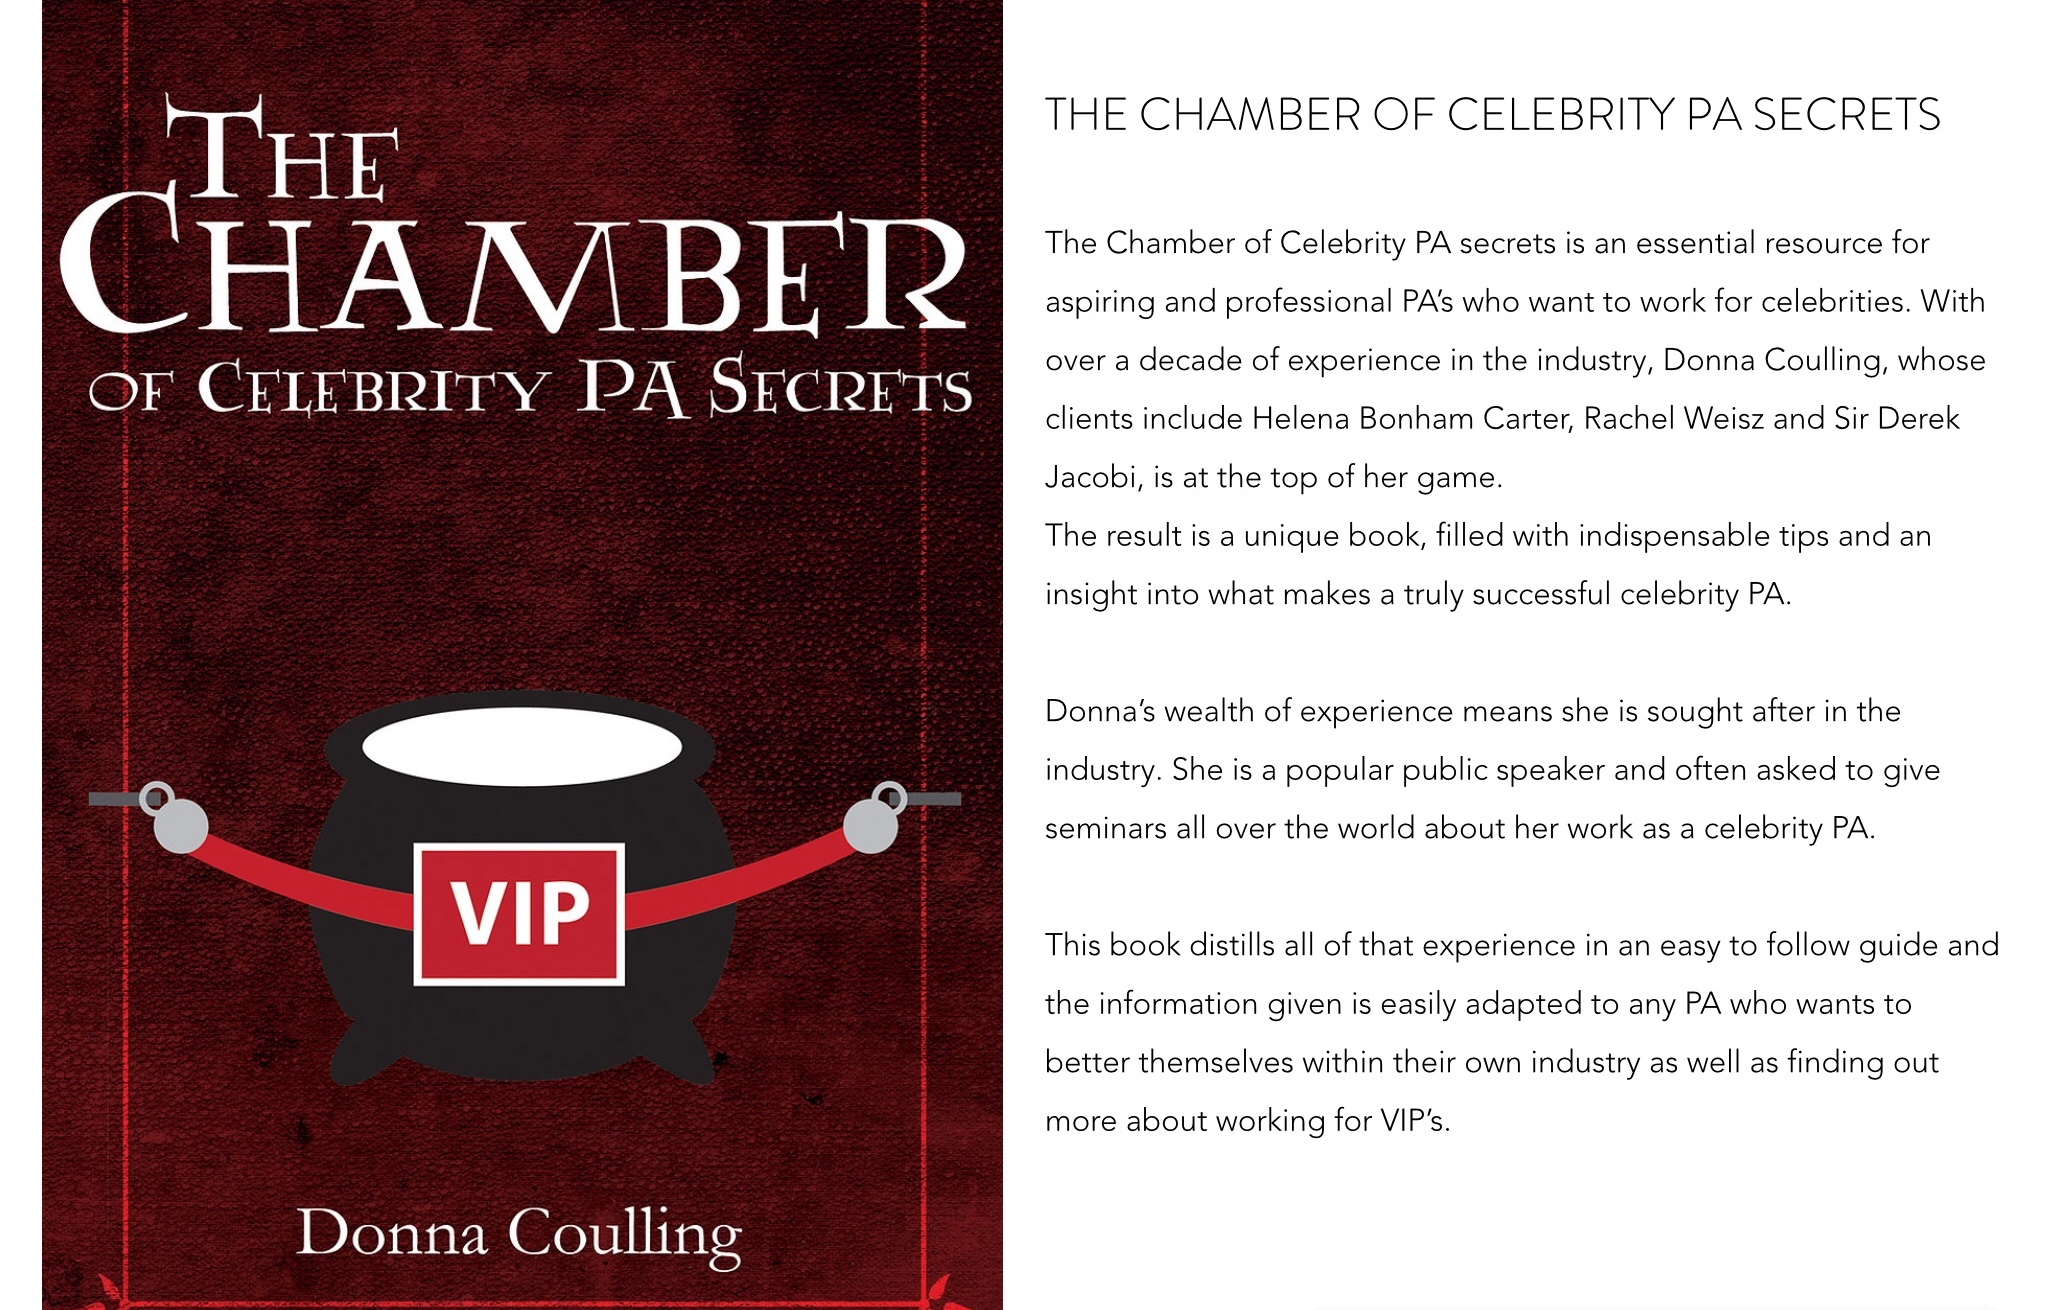 The Chamber of Celebrity PA Secrets